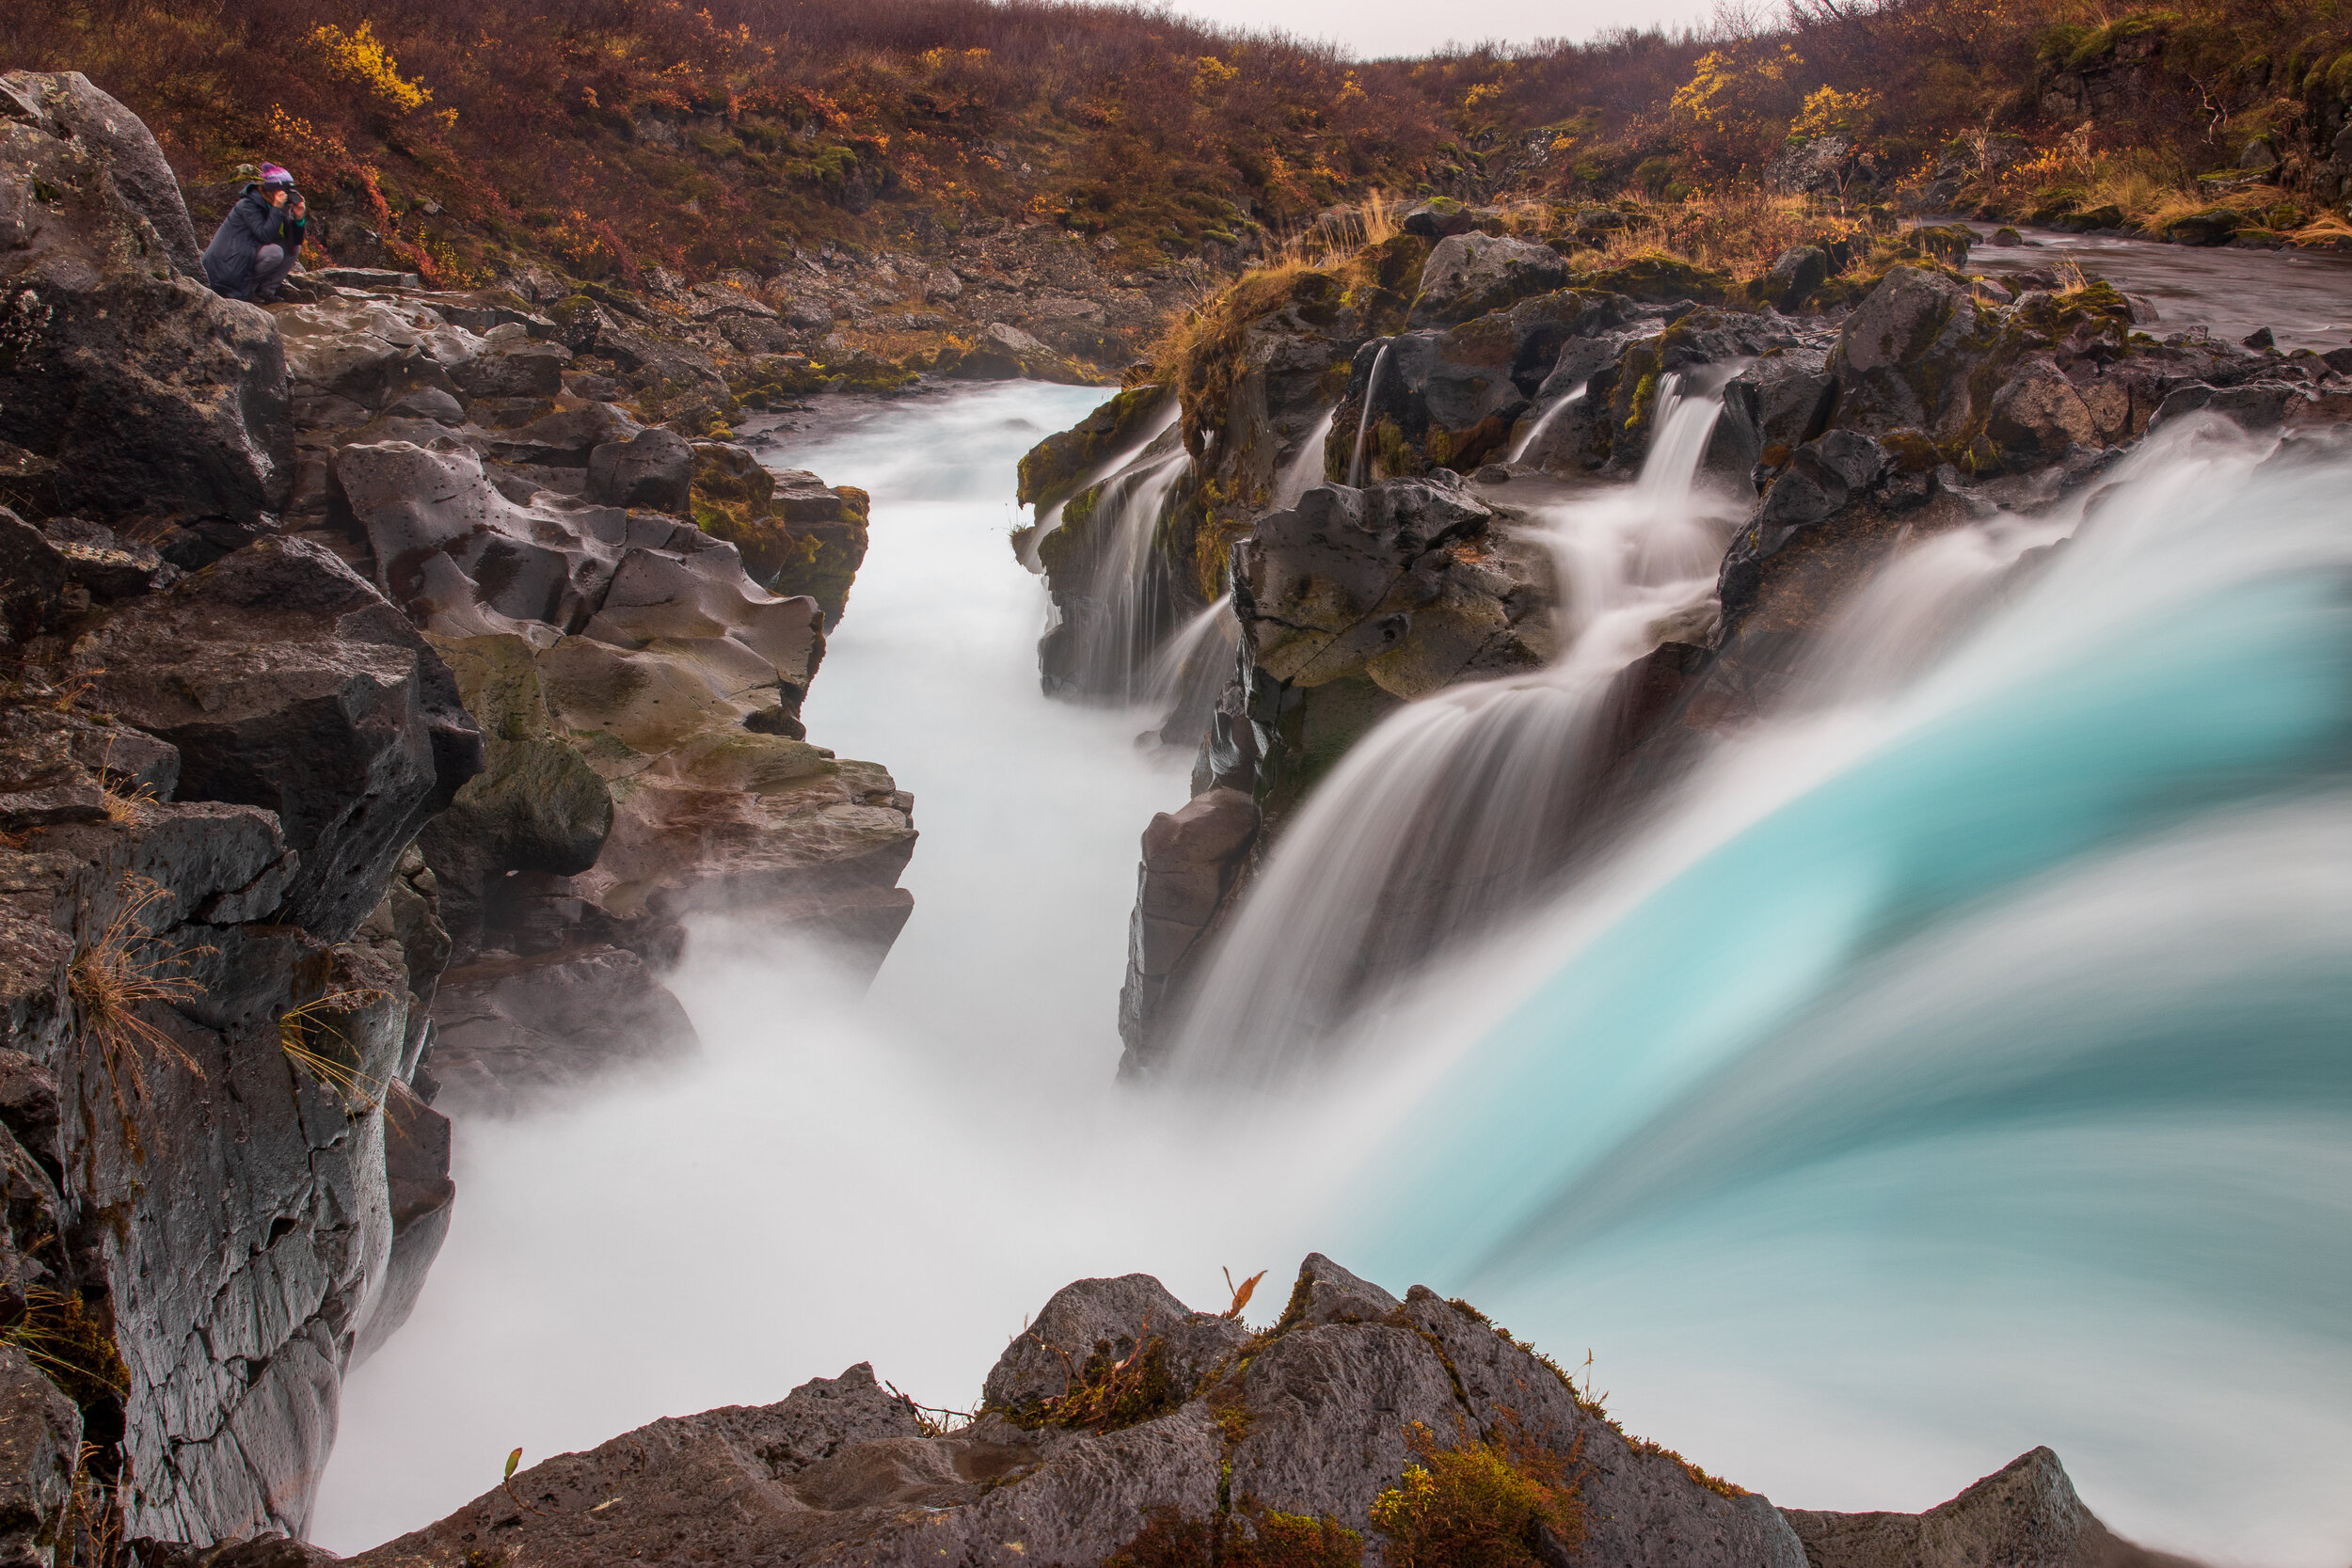 On the way we stopped at Bruarfoss, Iceland's bluest waterfall. The sky blue water characteristic of these falls is from fine glacial silt suspended in the water.